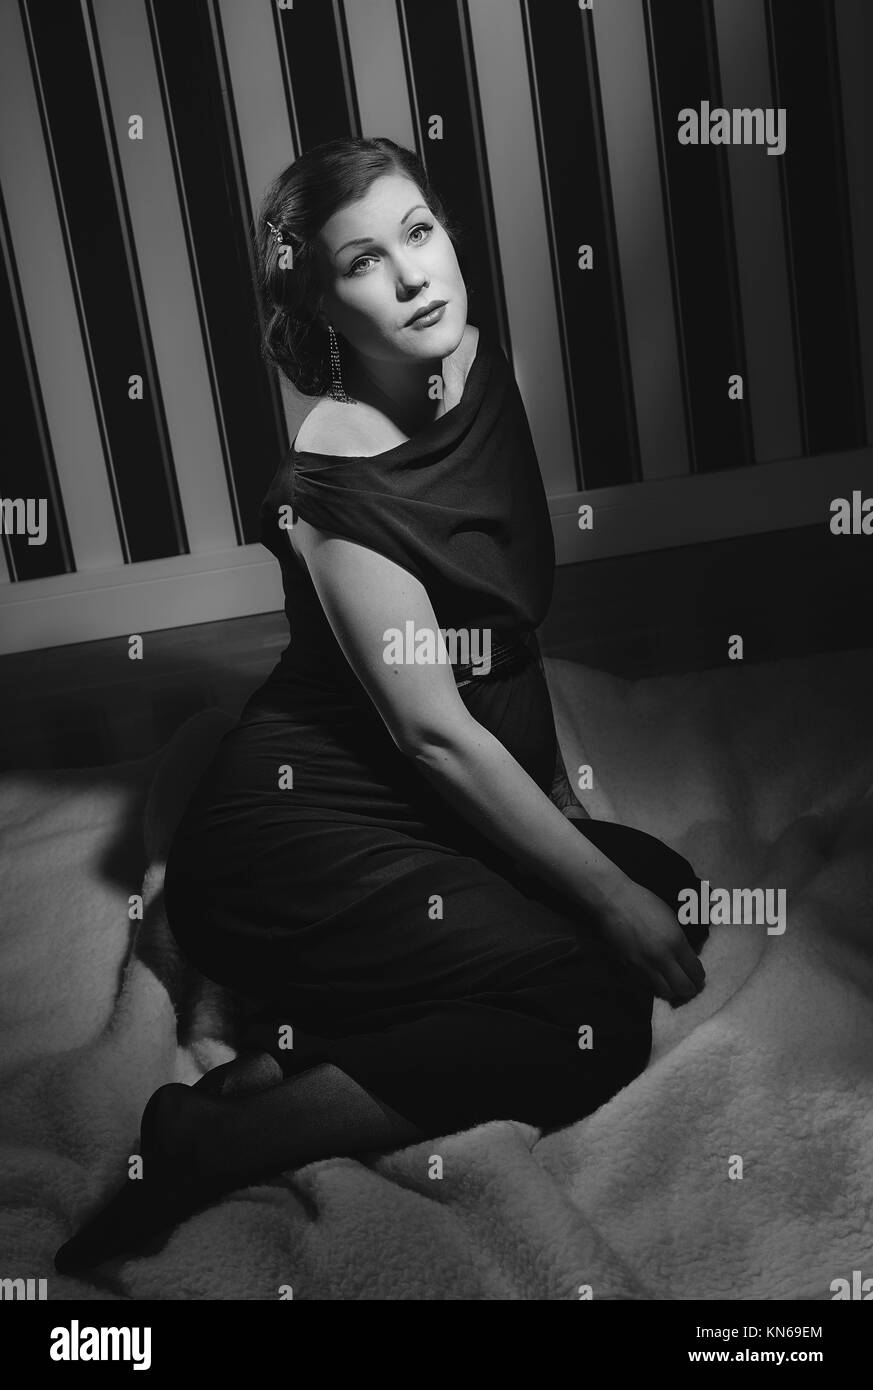 Hollywood black and white, a beautiful pregnant woman - minimal lighting and strong contrast. - Stock Image